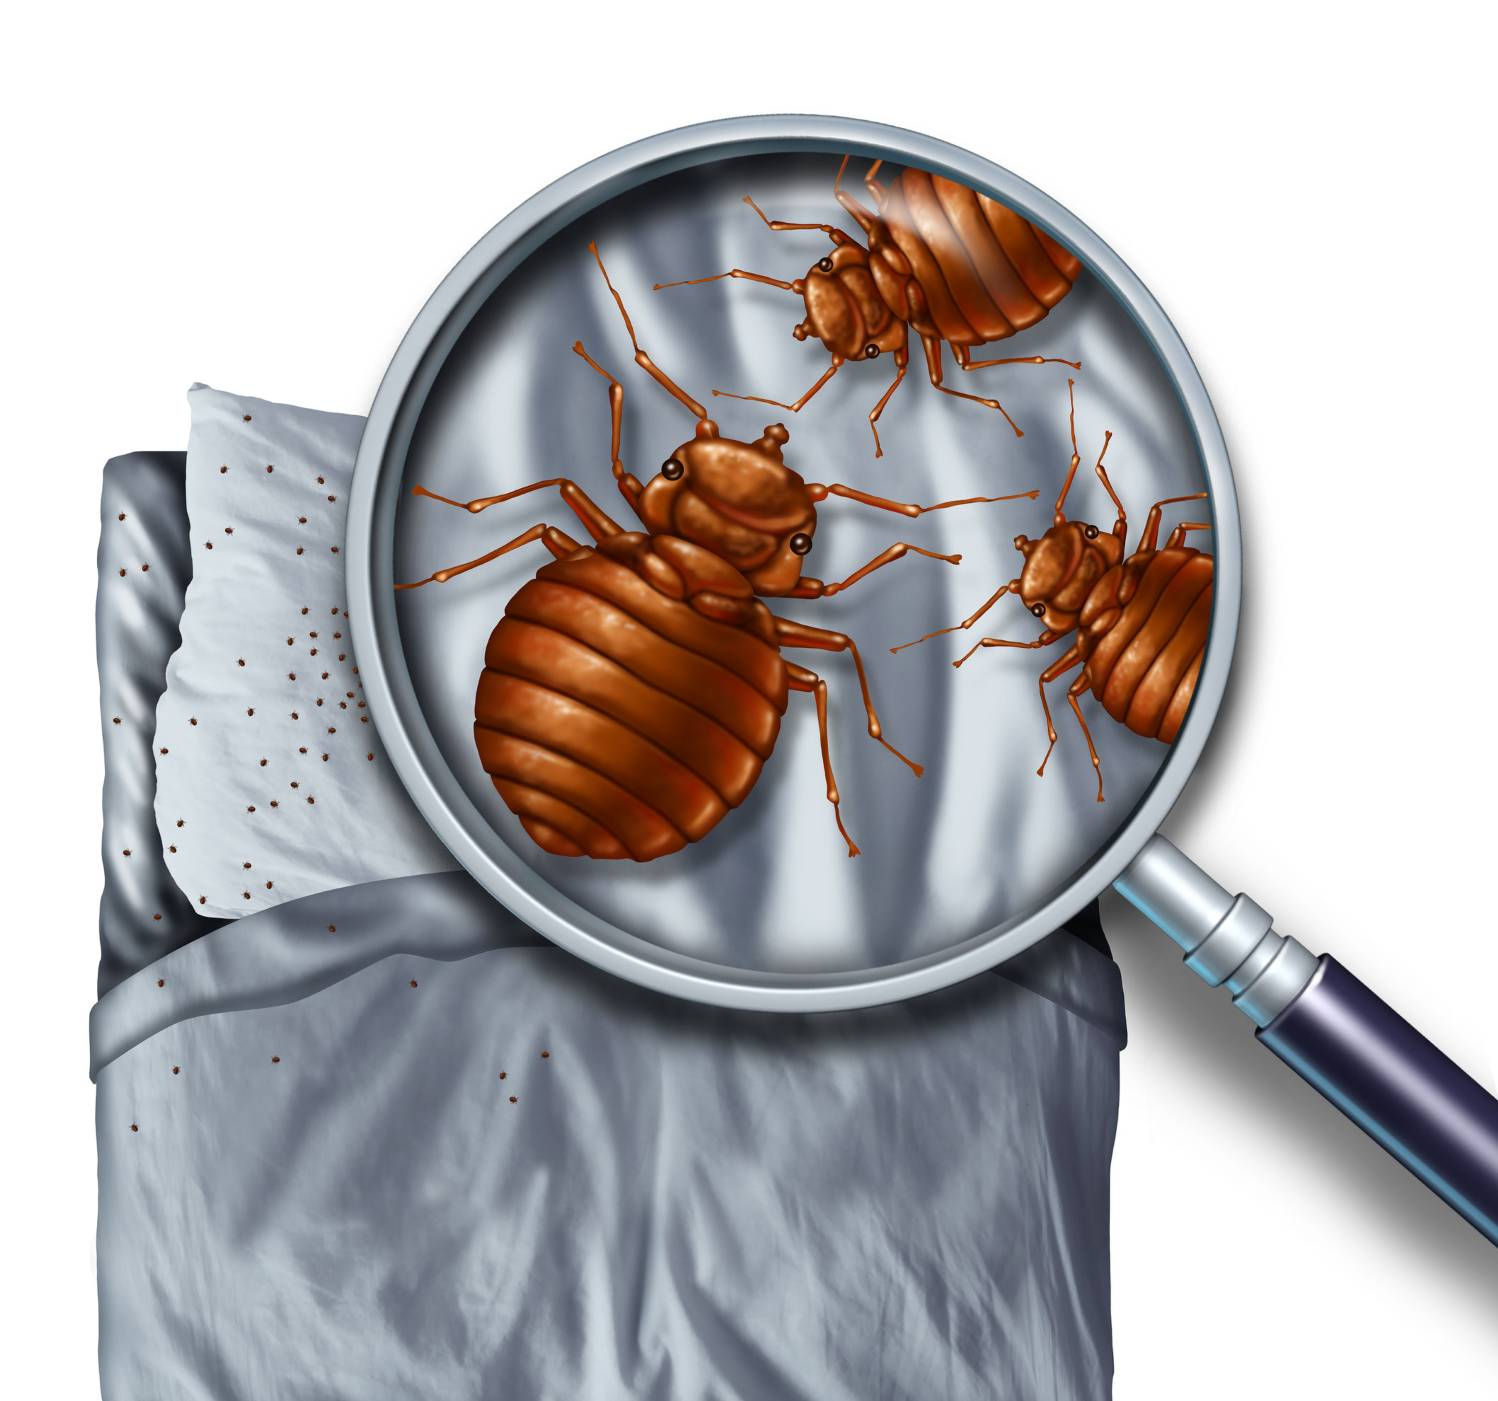 What do bed bugs look like k9 bug detectors - Bed Bug And Mold Detection Dogs